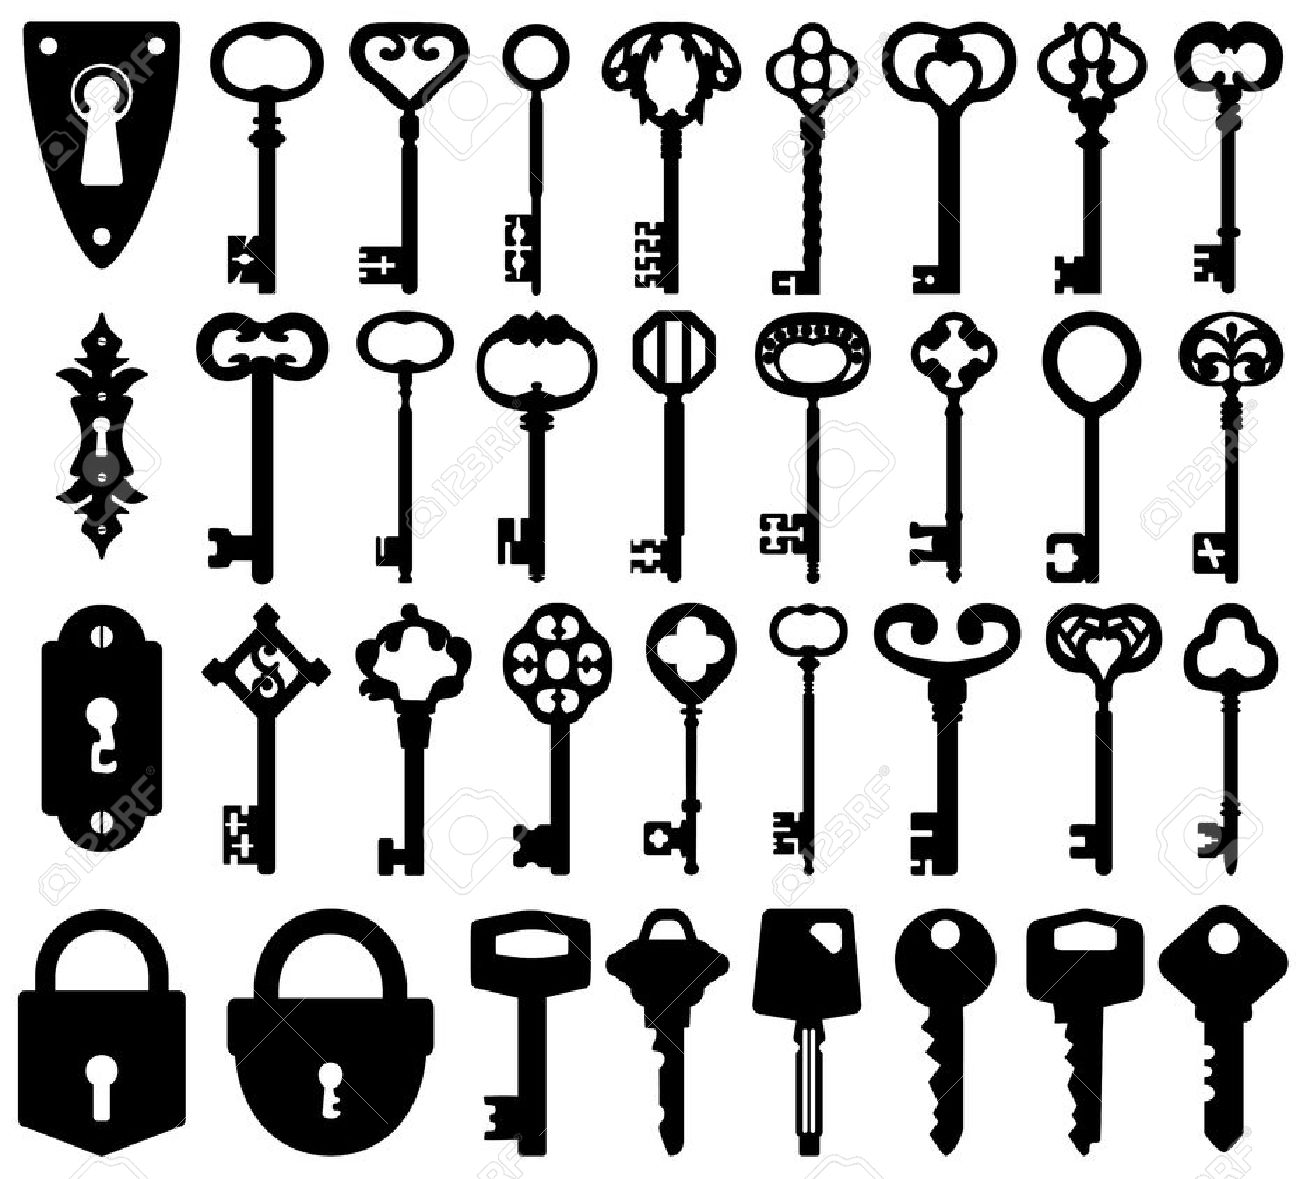 Old Key Outline Clipart